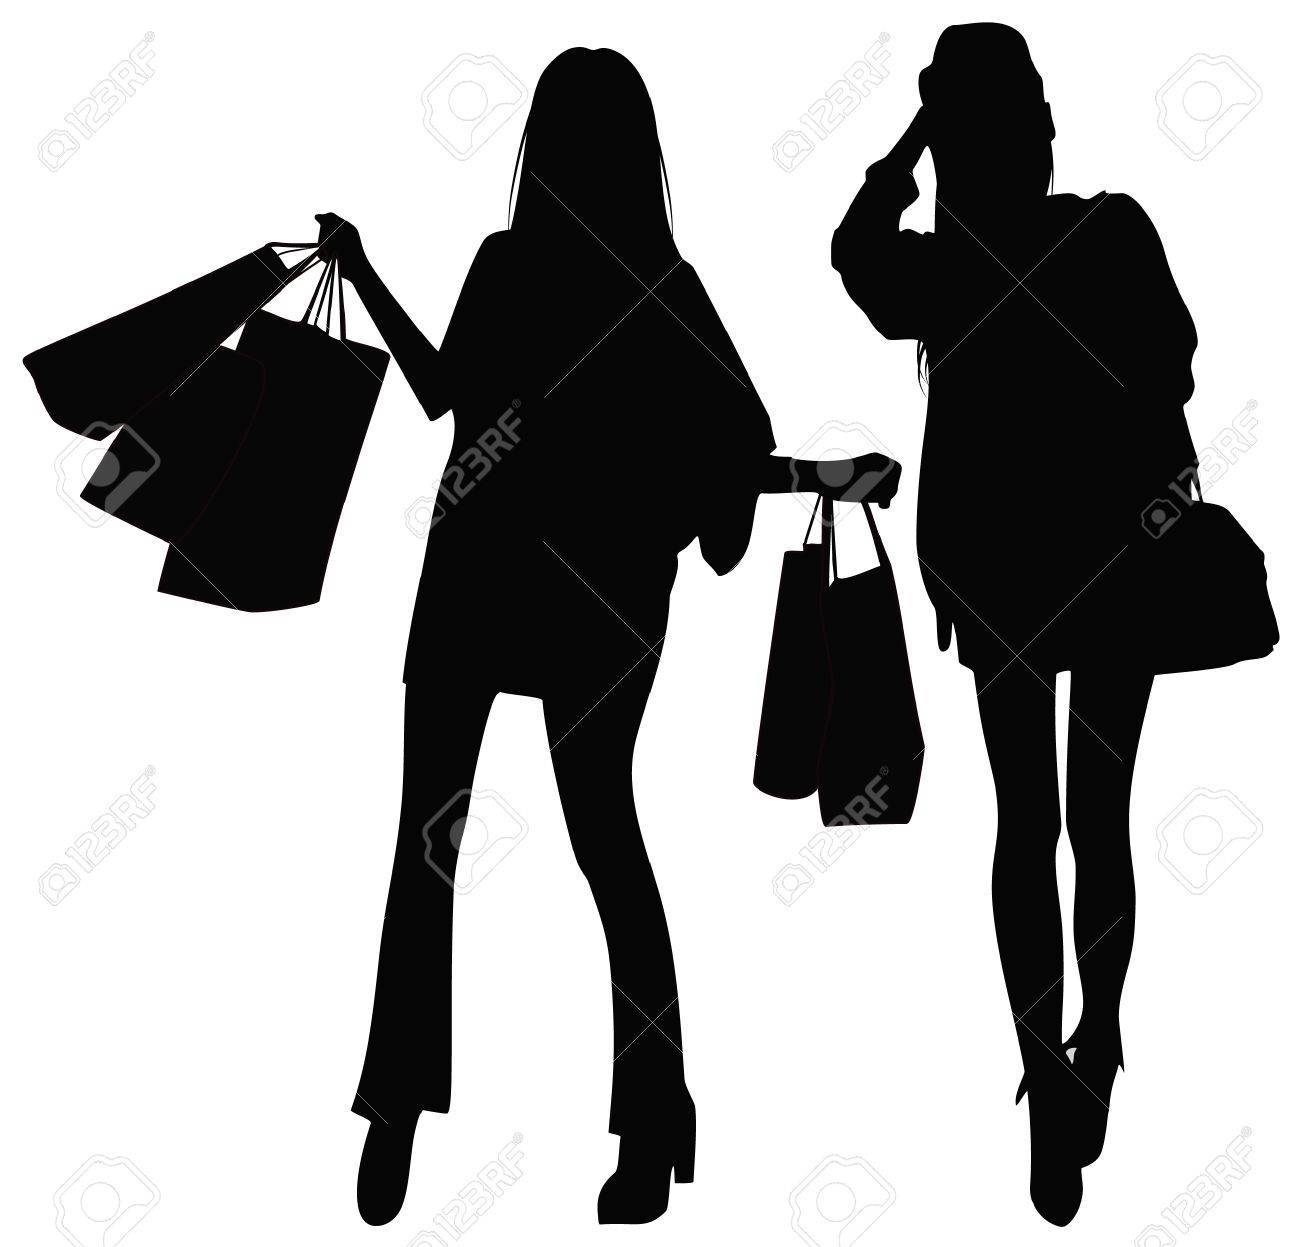 Silhouettes of two girls Stock Vector - 8397413